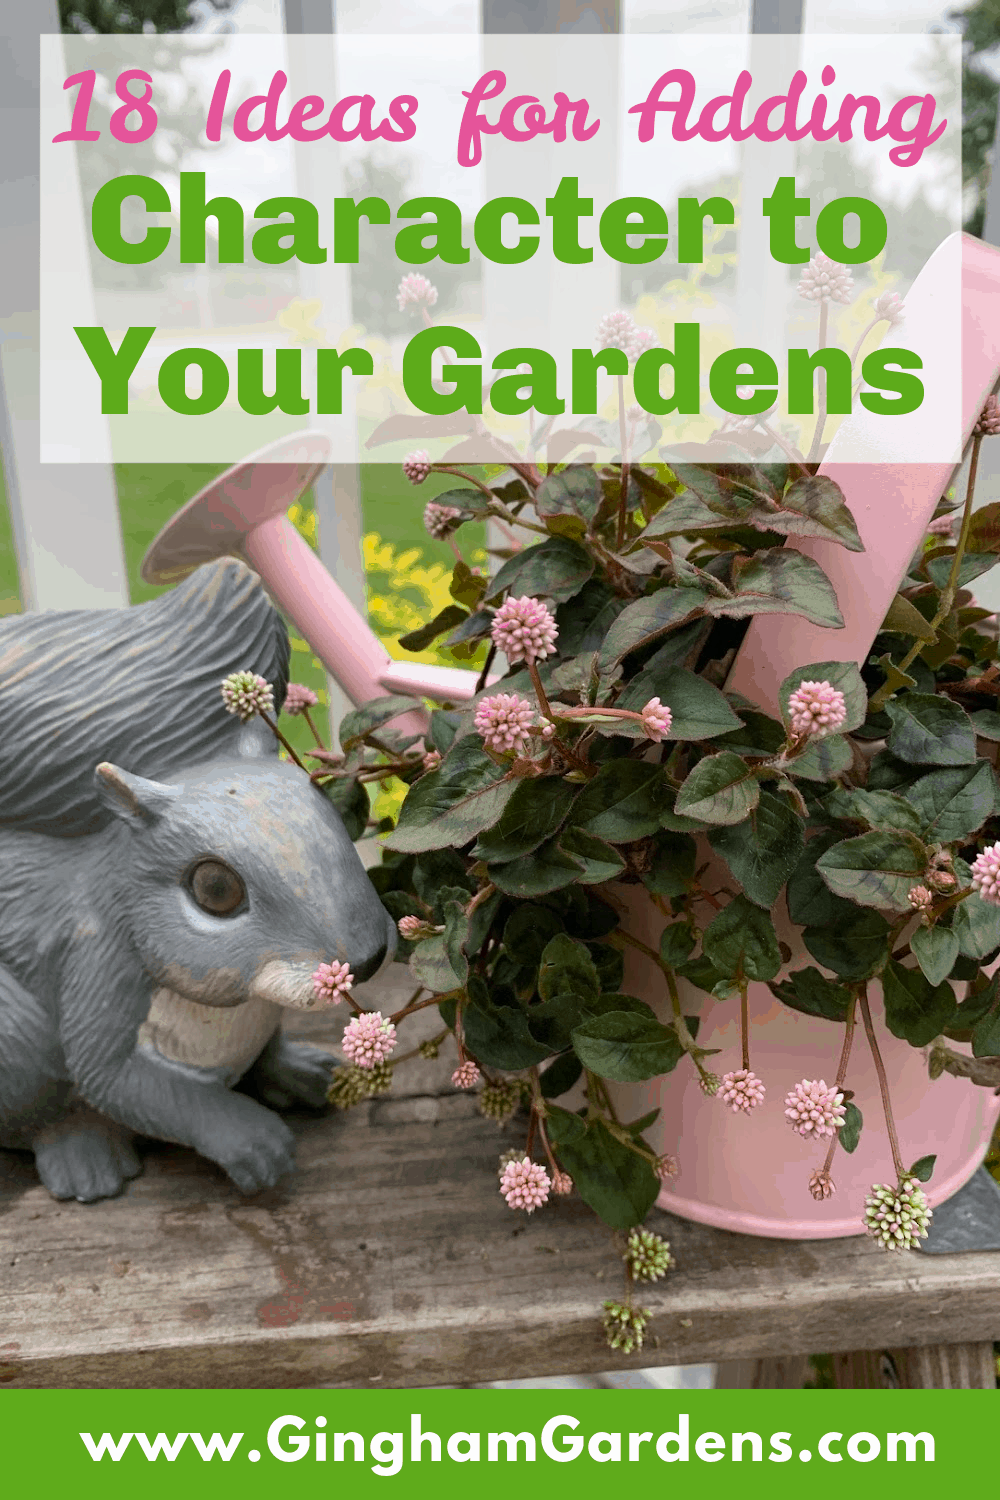 Image of Garden Decor with Text Overlay - 18 Ideas for Adding Character to Your Gardens